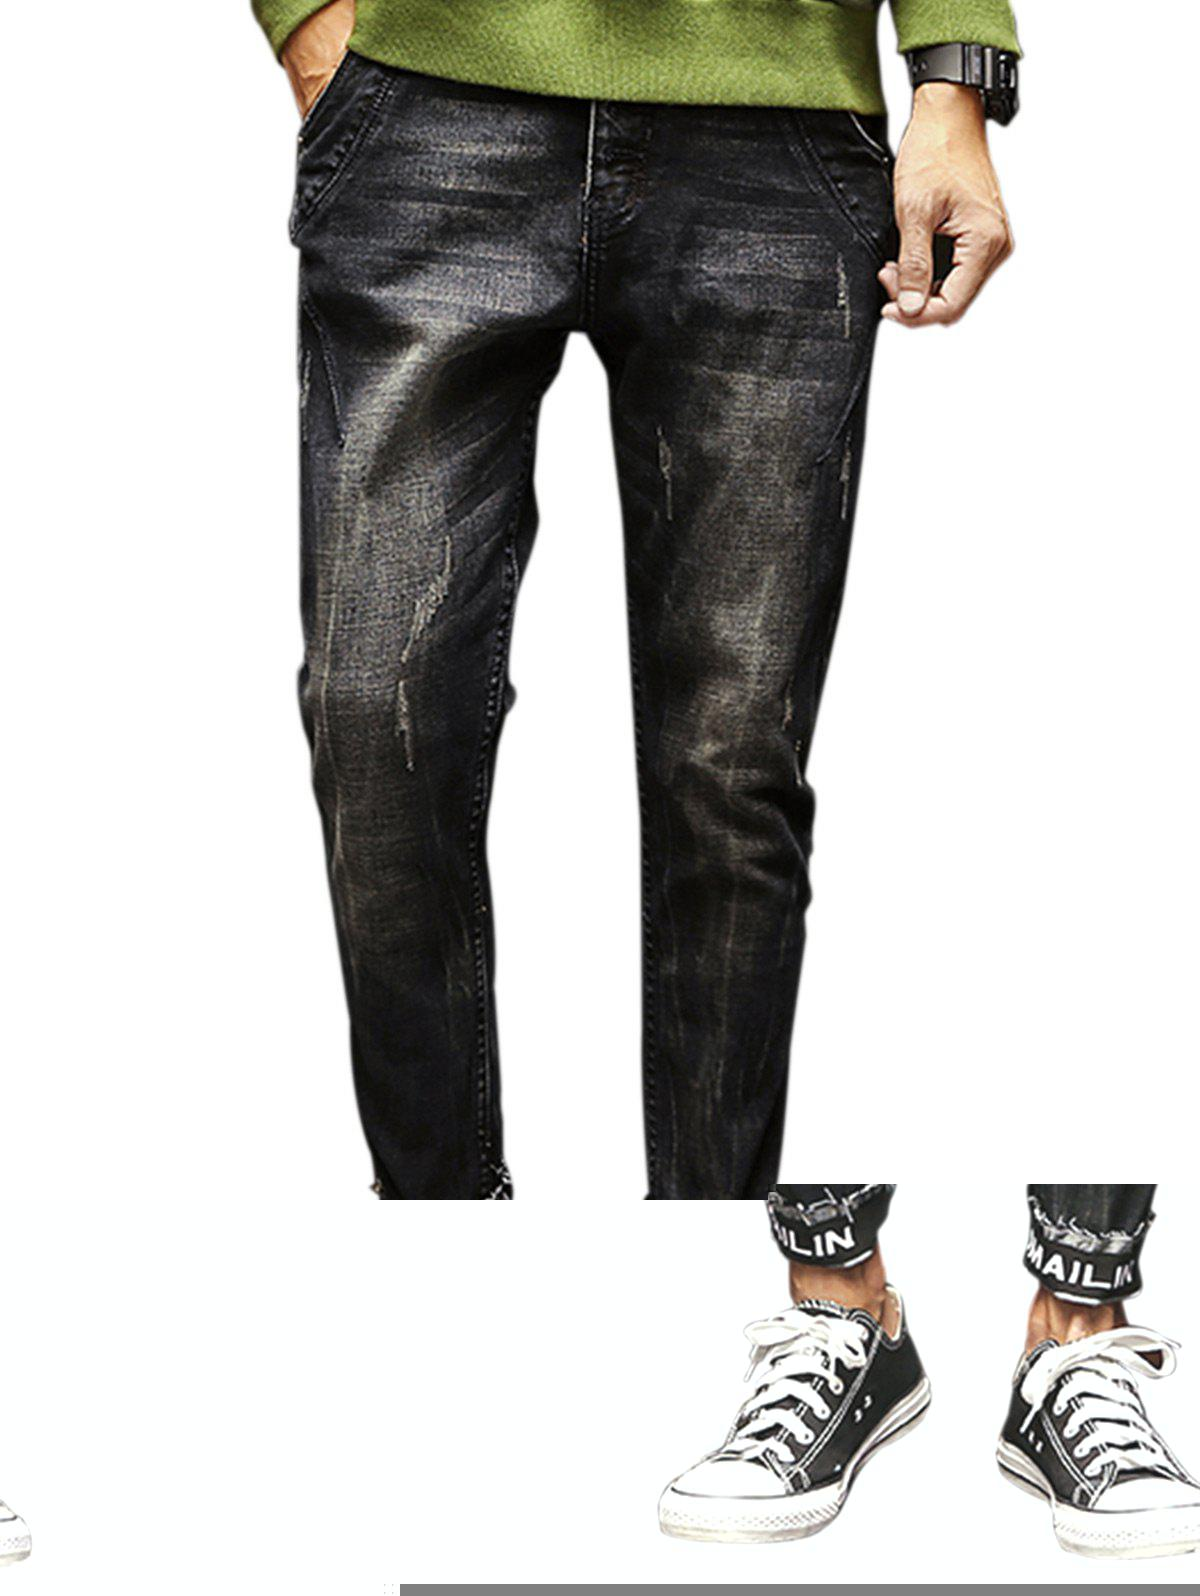 Zipper Fly Graphic Print Elastic Beem Feet Ripped Jeans купить